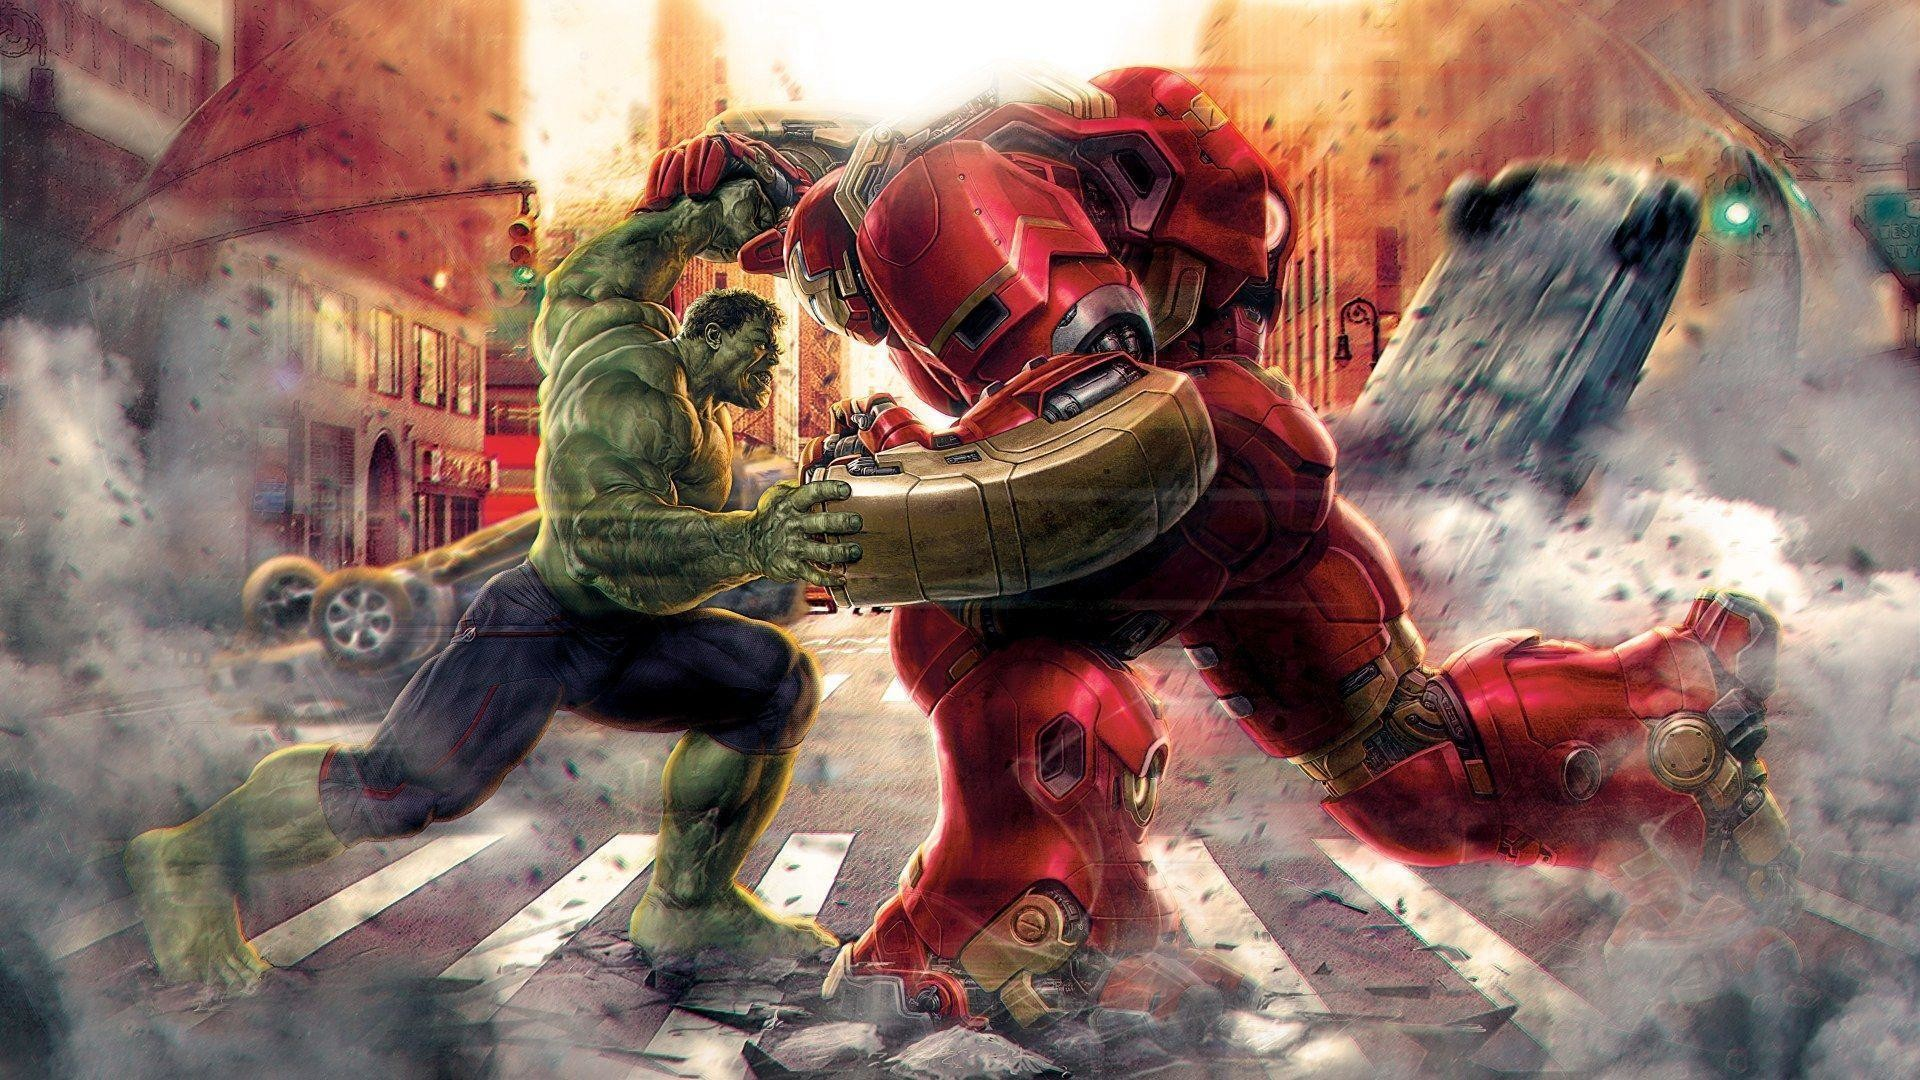 Res: 1920x1080, Hulk-vs-Hulkbuster-Avengers-Age-of-Ultron-Wallpaper-